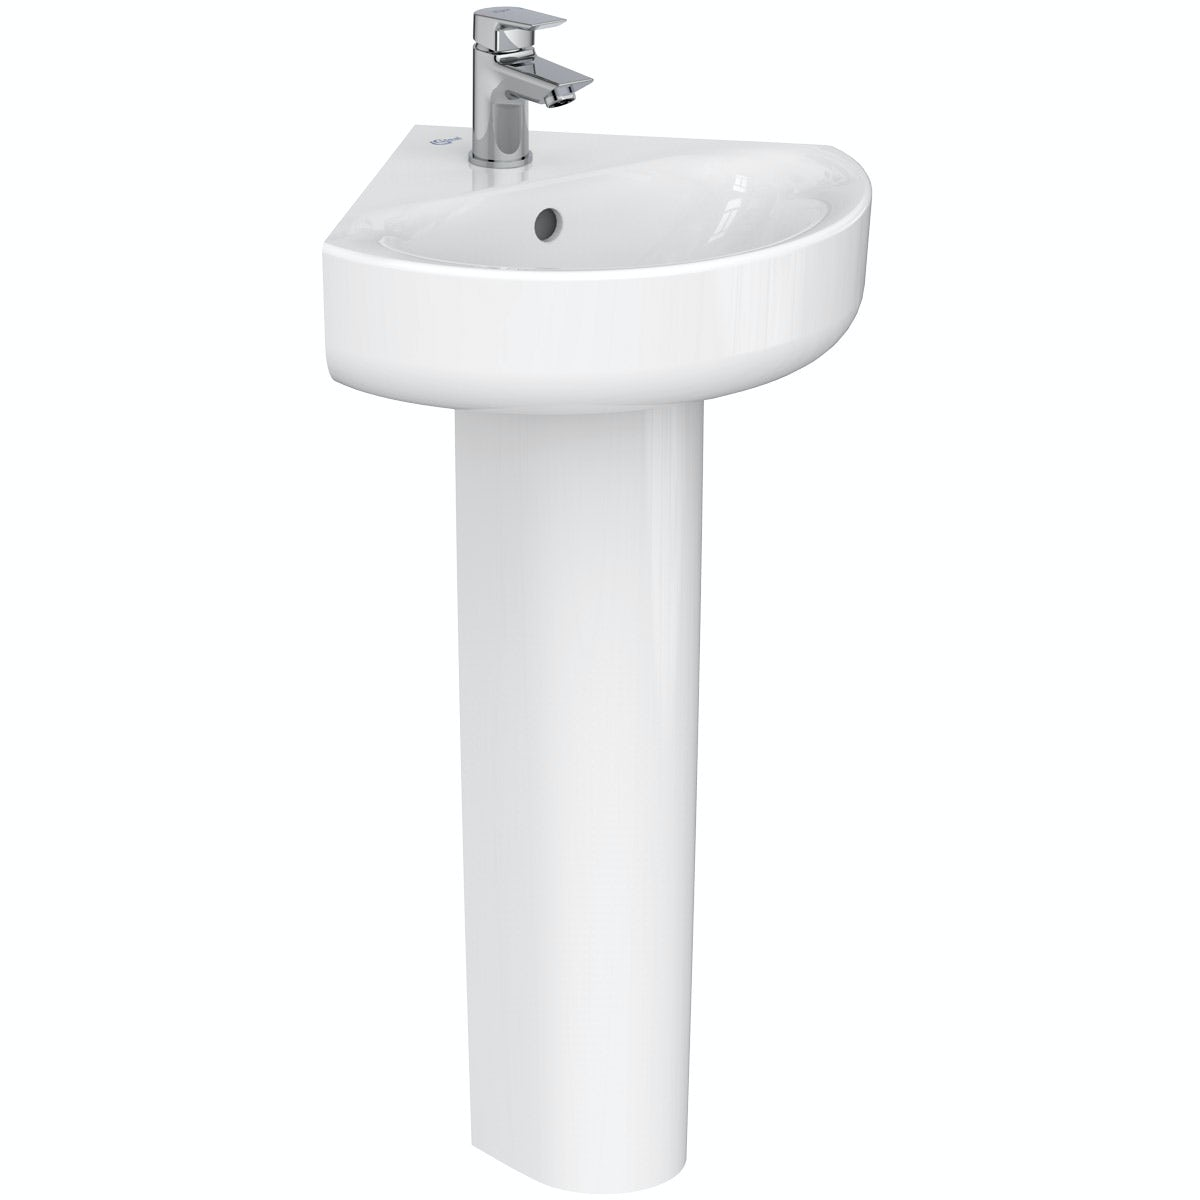 Ideal Standard Concept Space 1 tap hole full pedestal corner basin 450mm